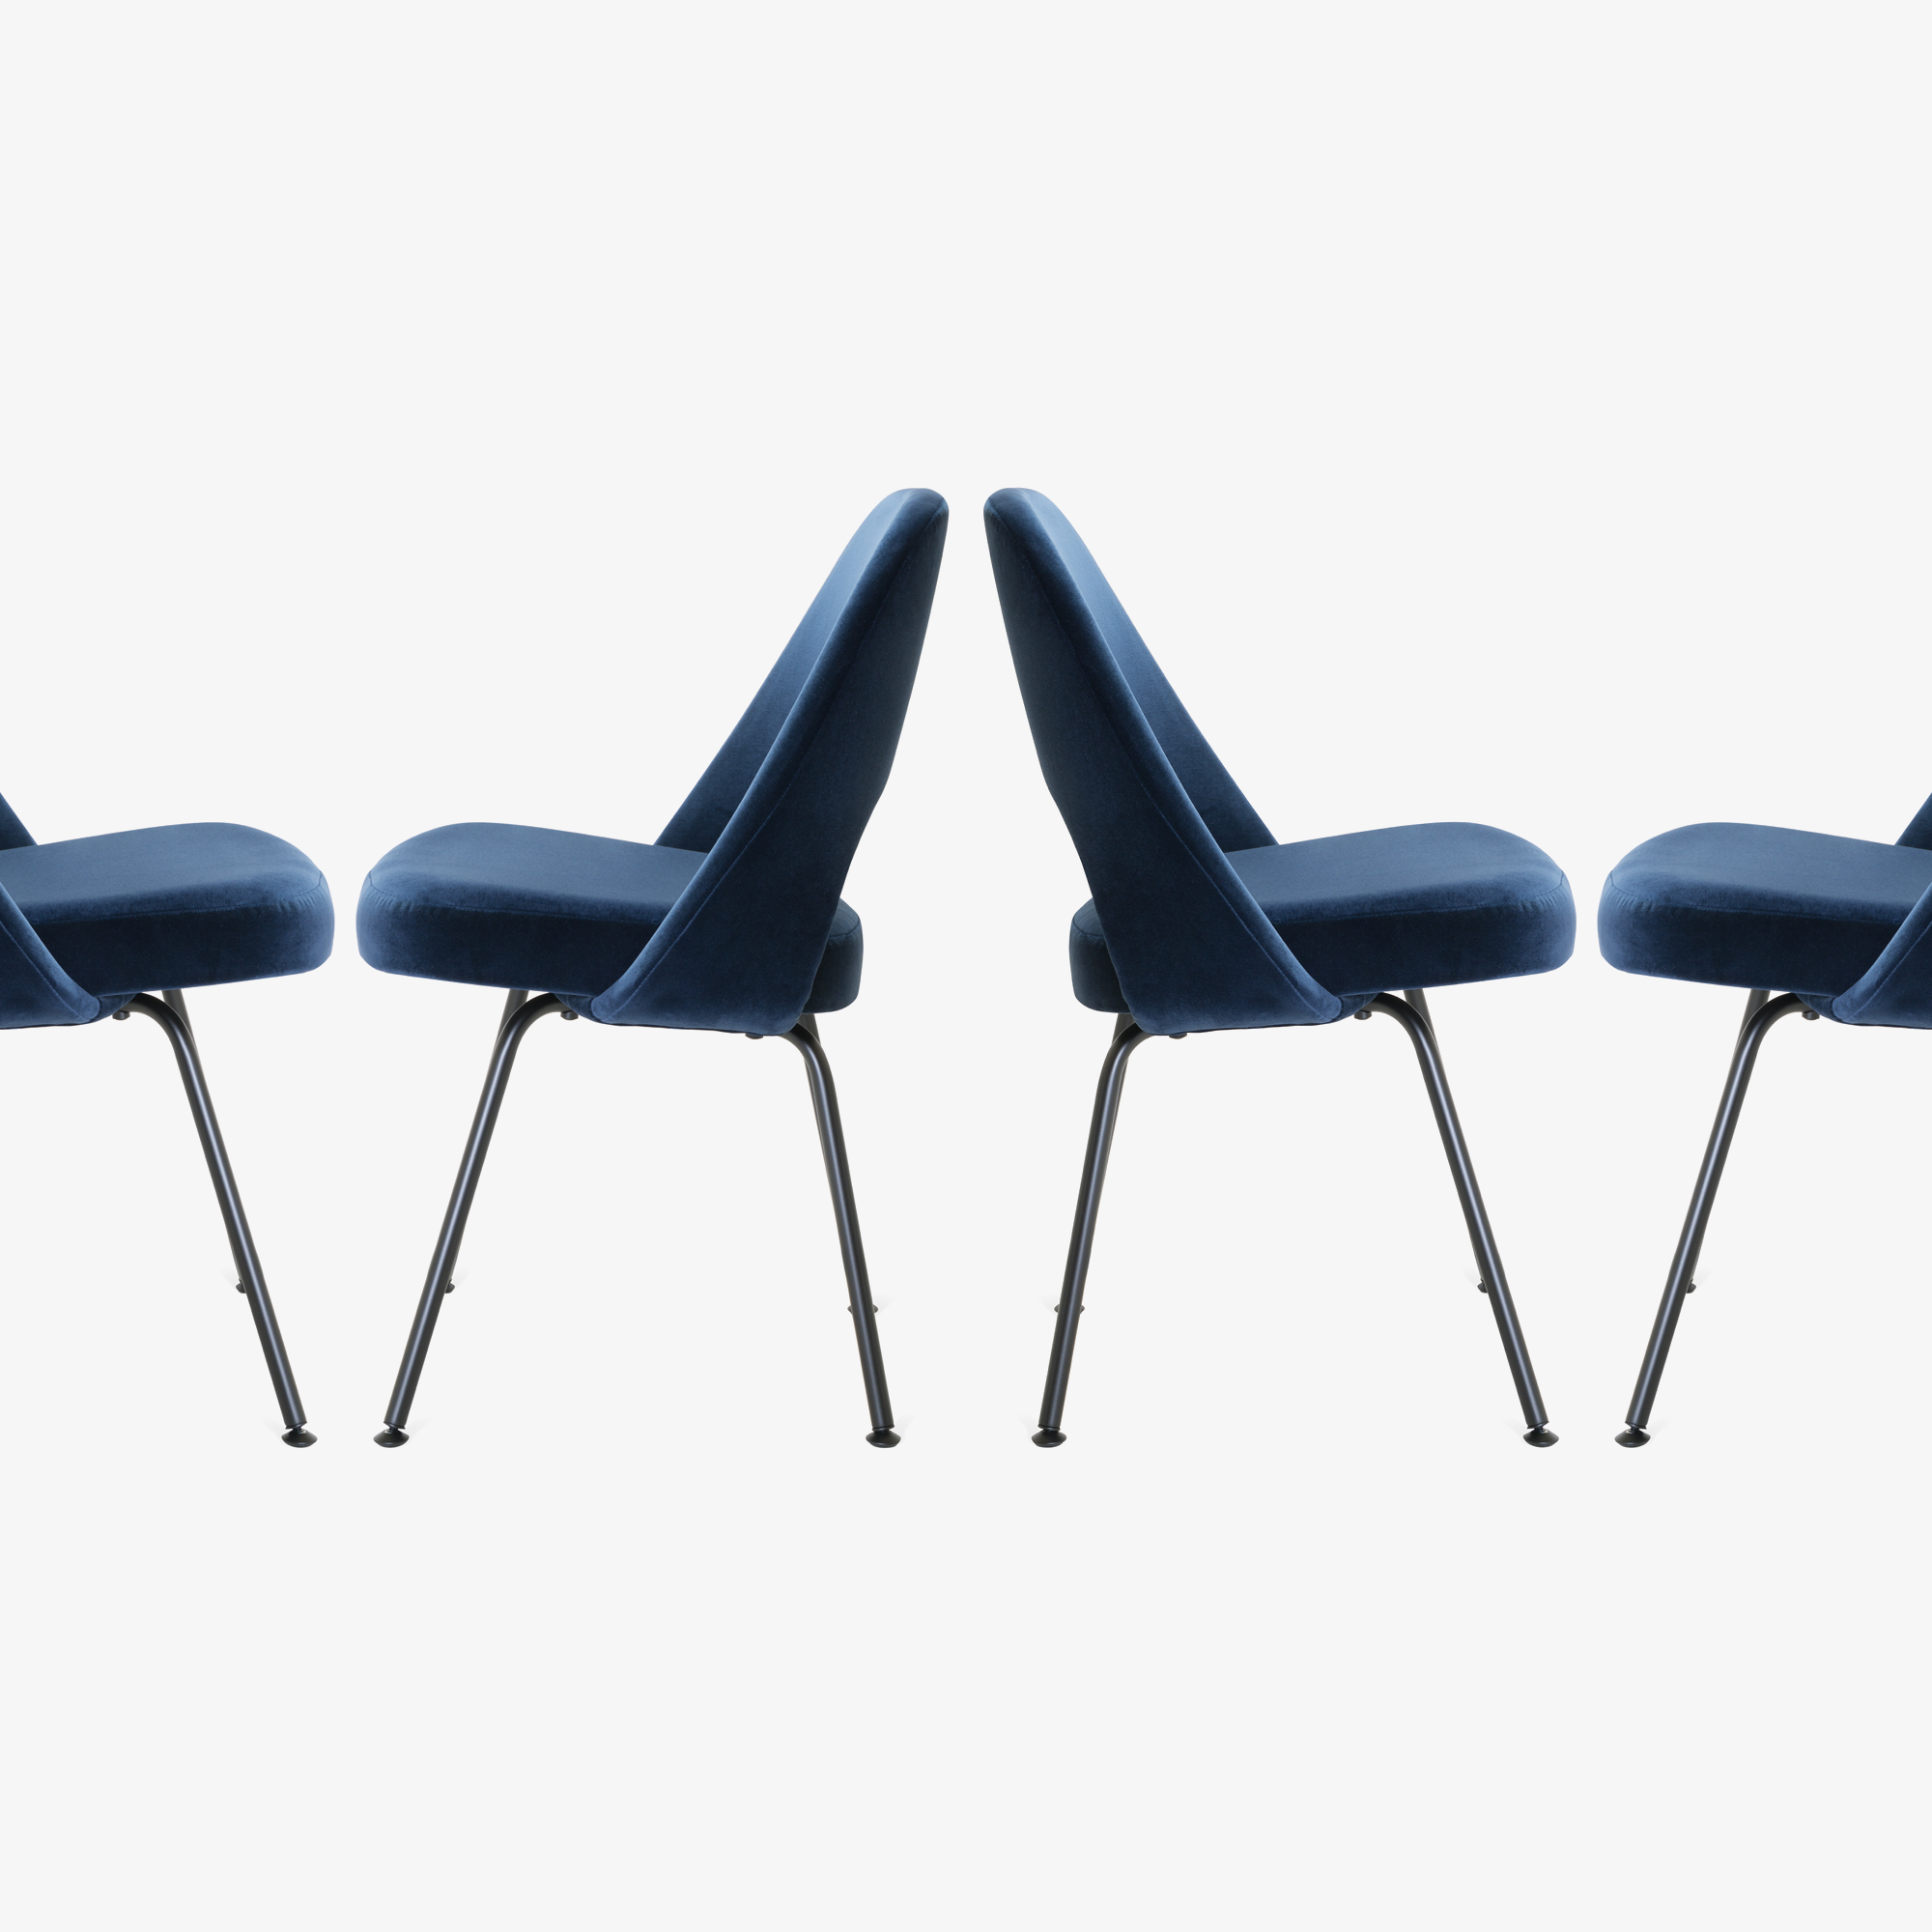 Saarinen Executive Armless Chairs in Navy Velvet, Black Edition6.png